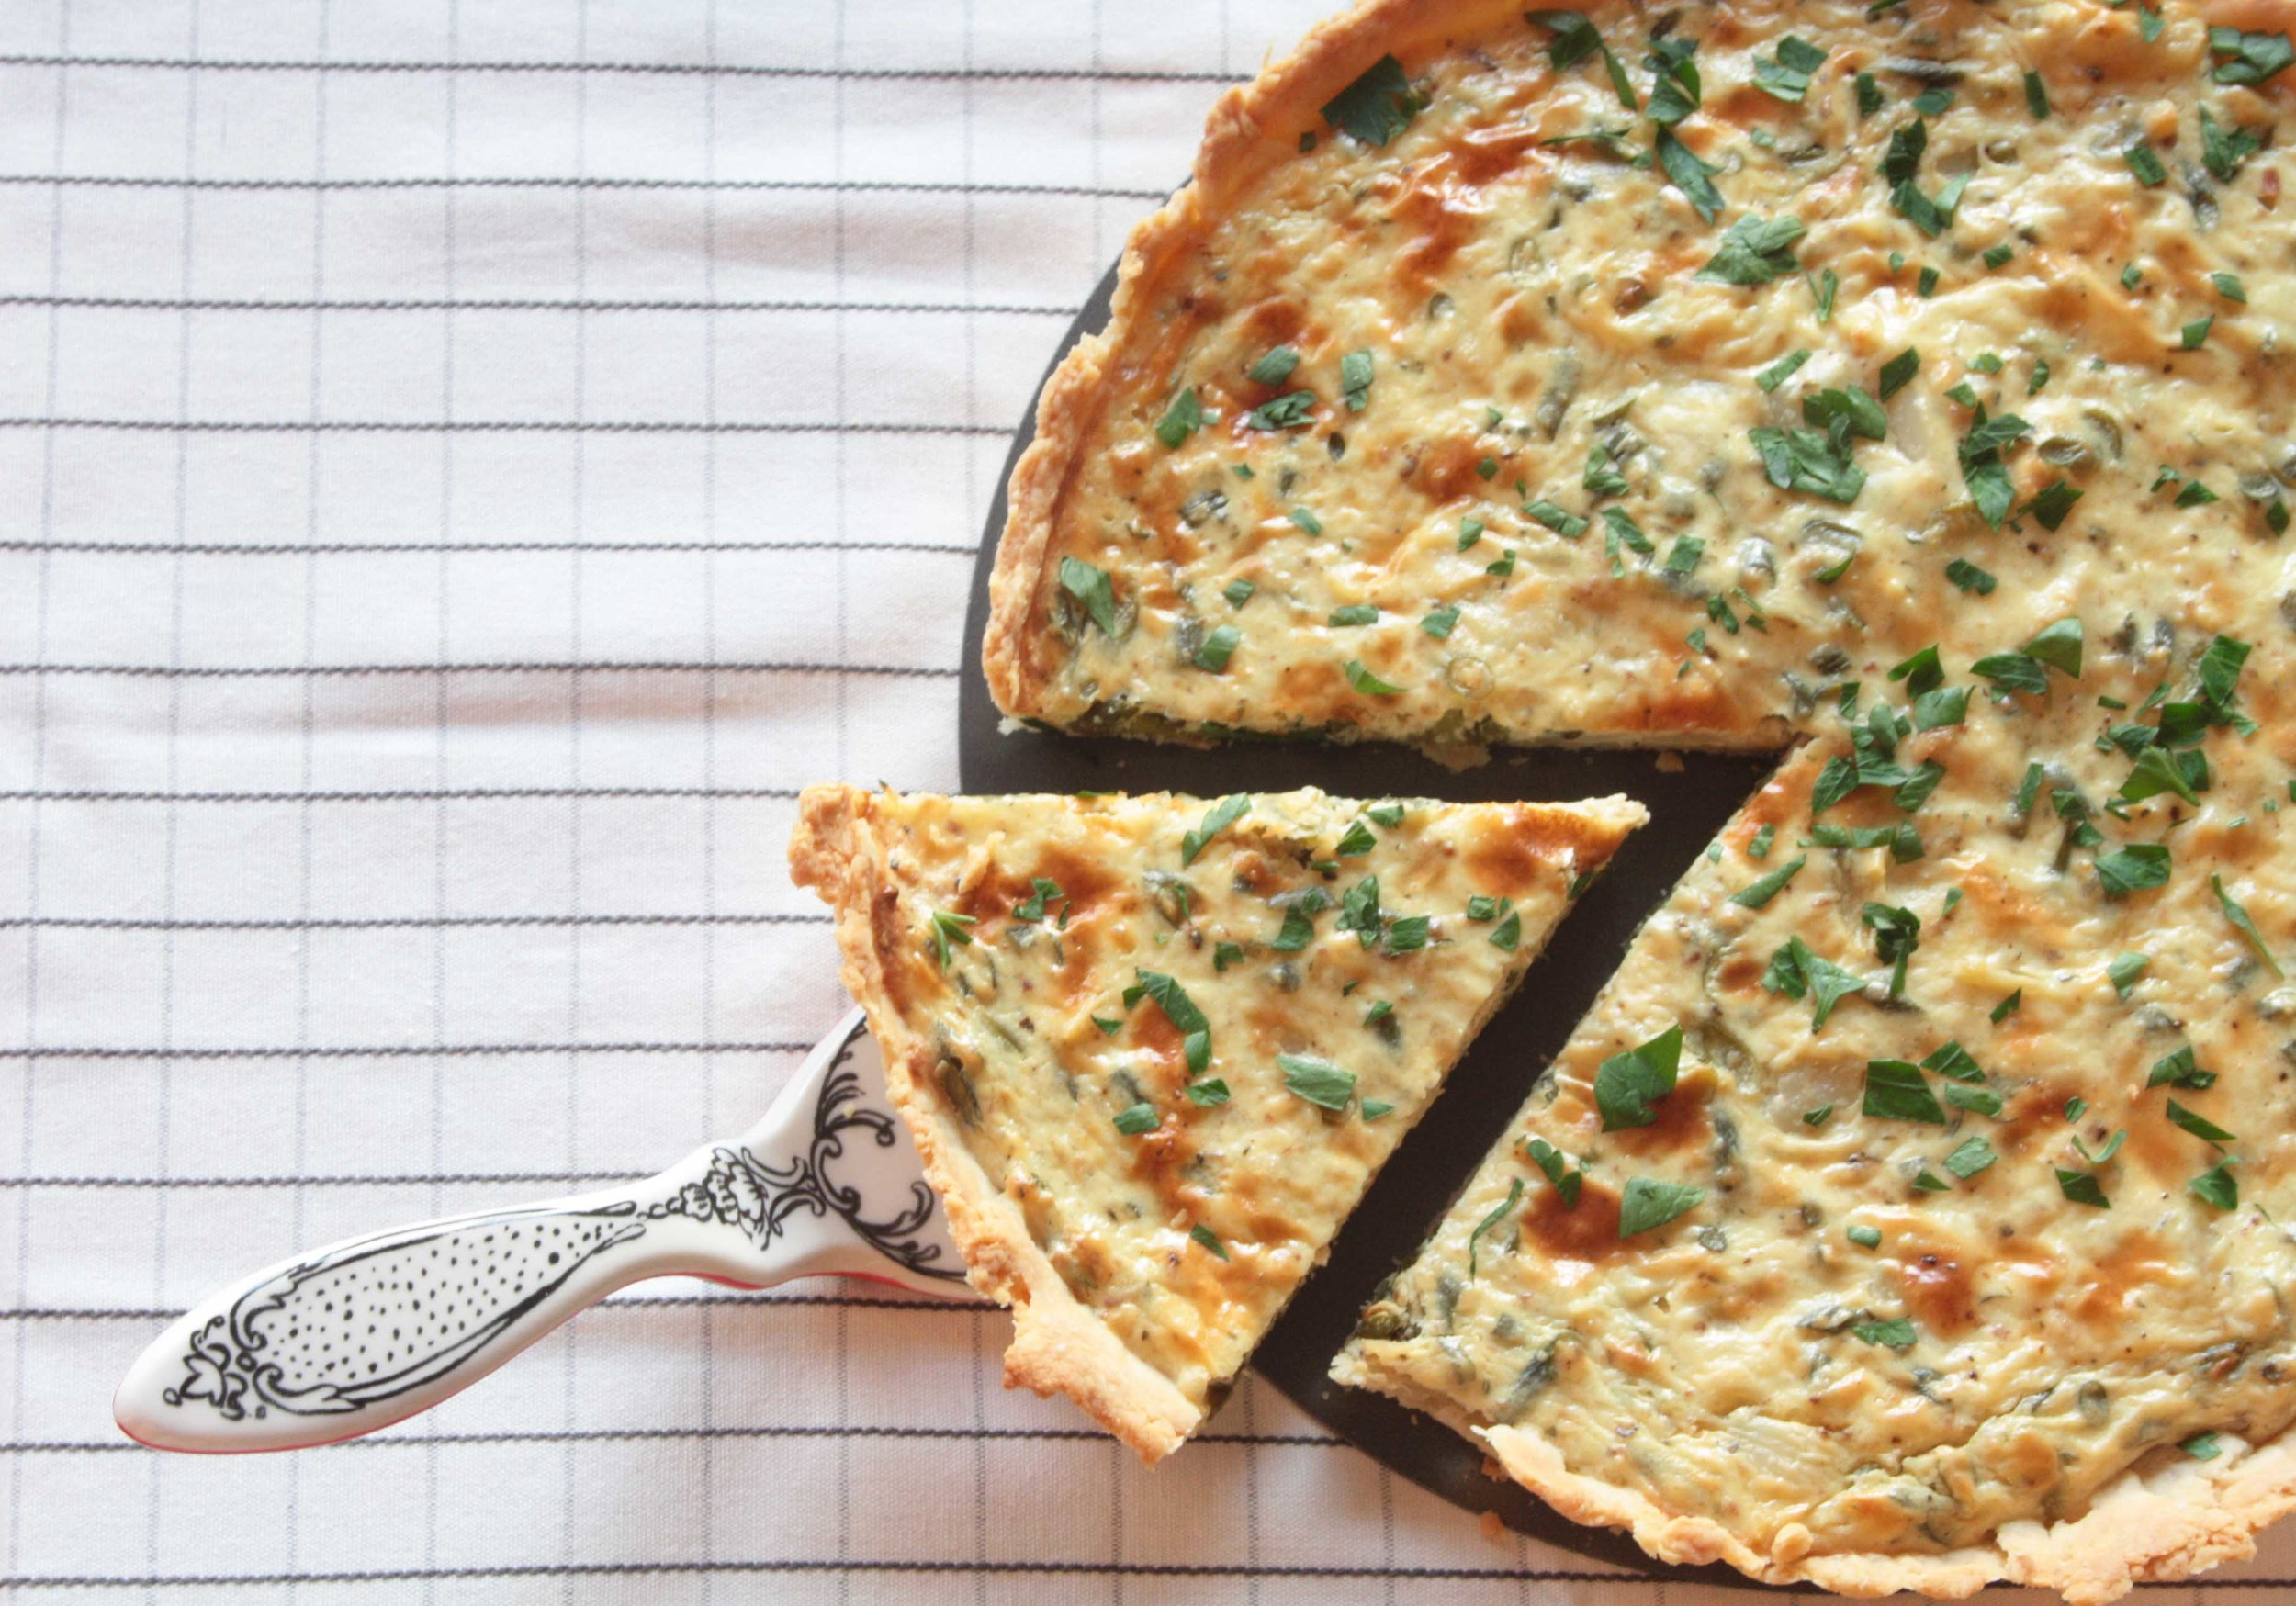 Garlic tart with scapes, green garlic and whole garlic